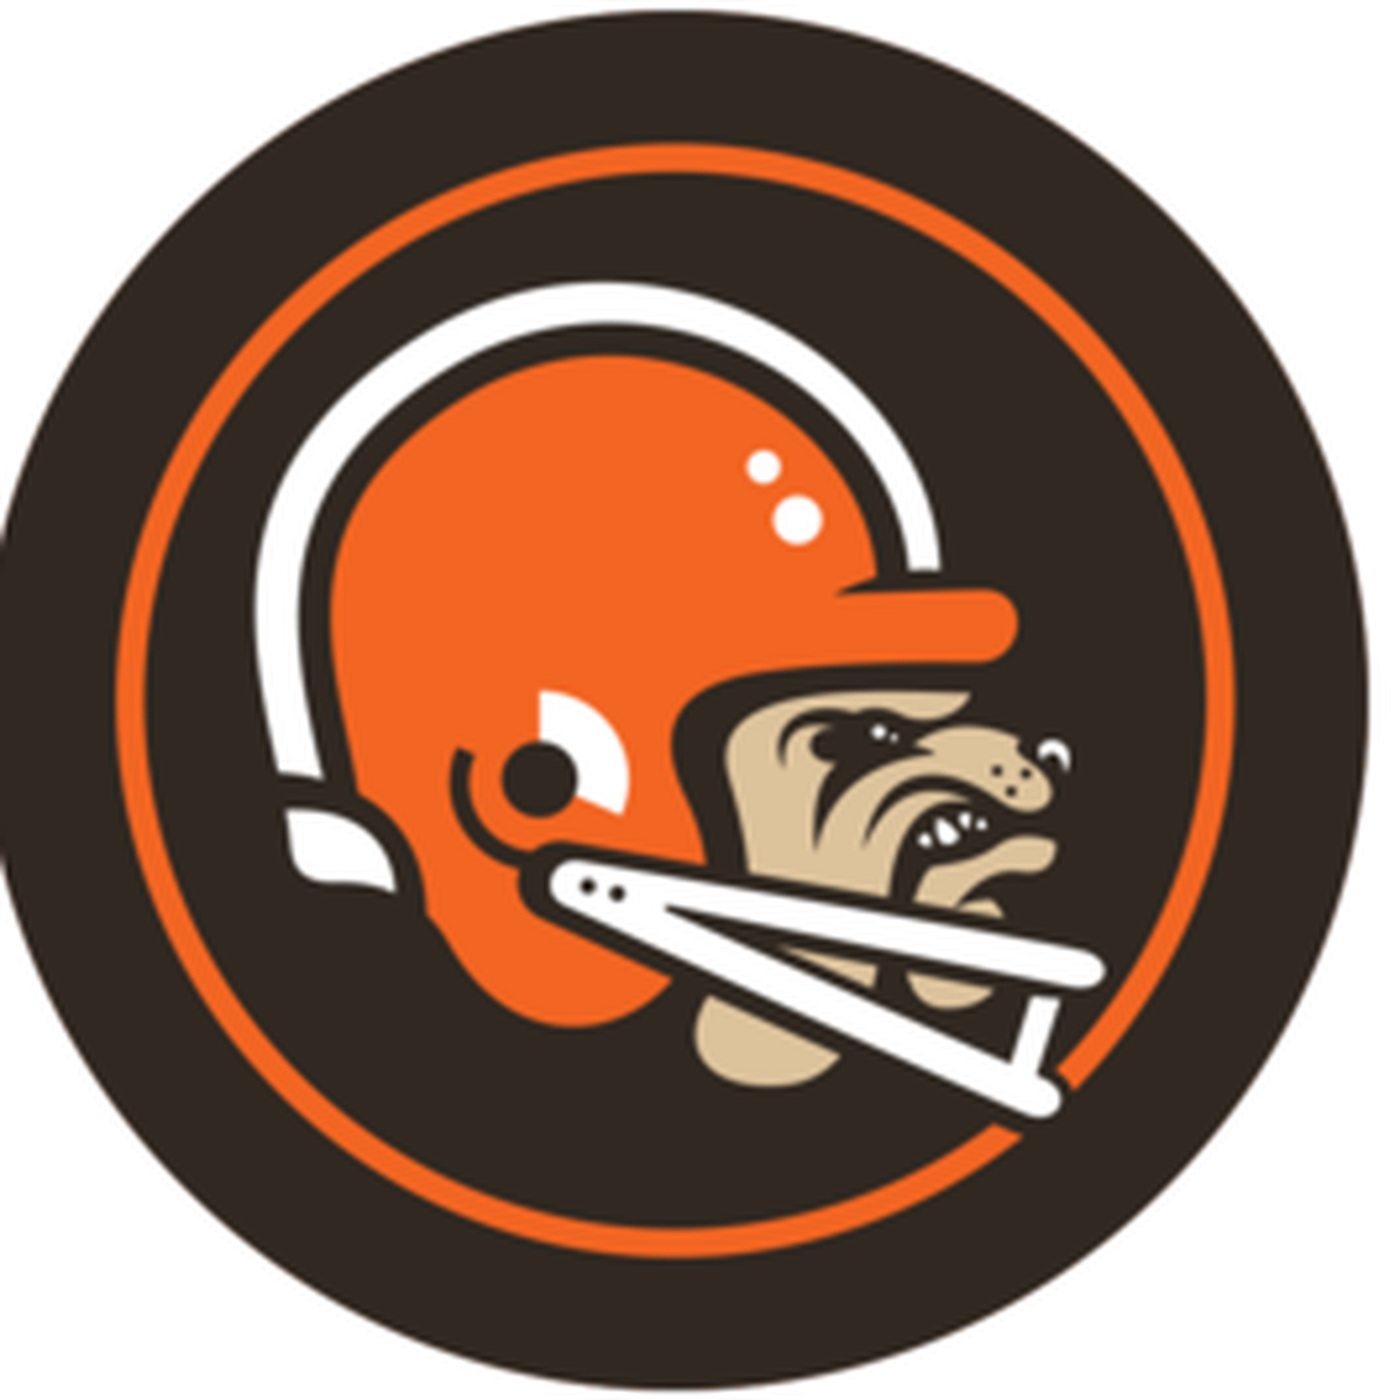 Football bleachers clipart clip royalty free library Cleveland Browns Draft Success #4: Daylon McCutcheon - Dawgs By Nature clip royalty free library